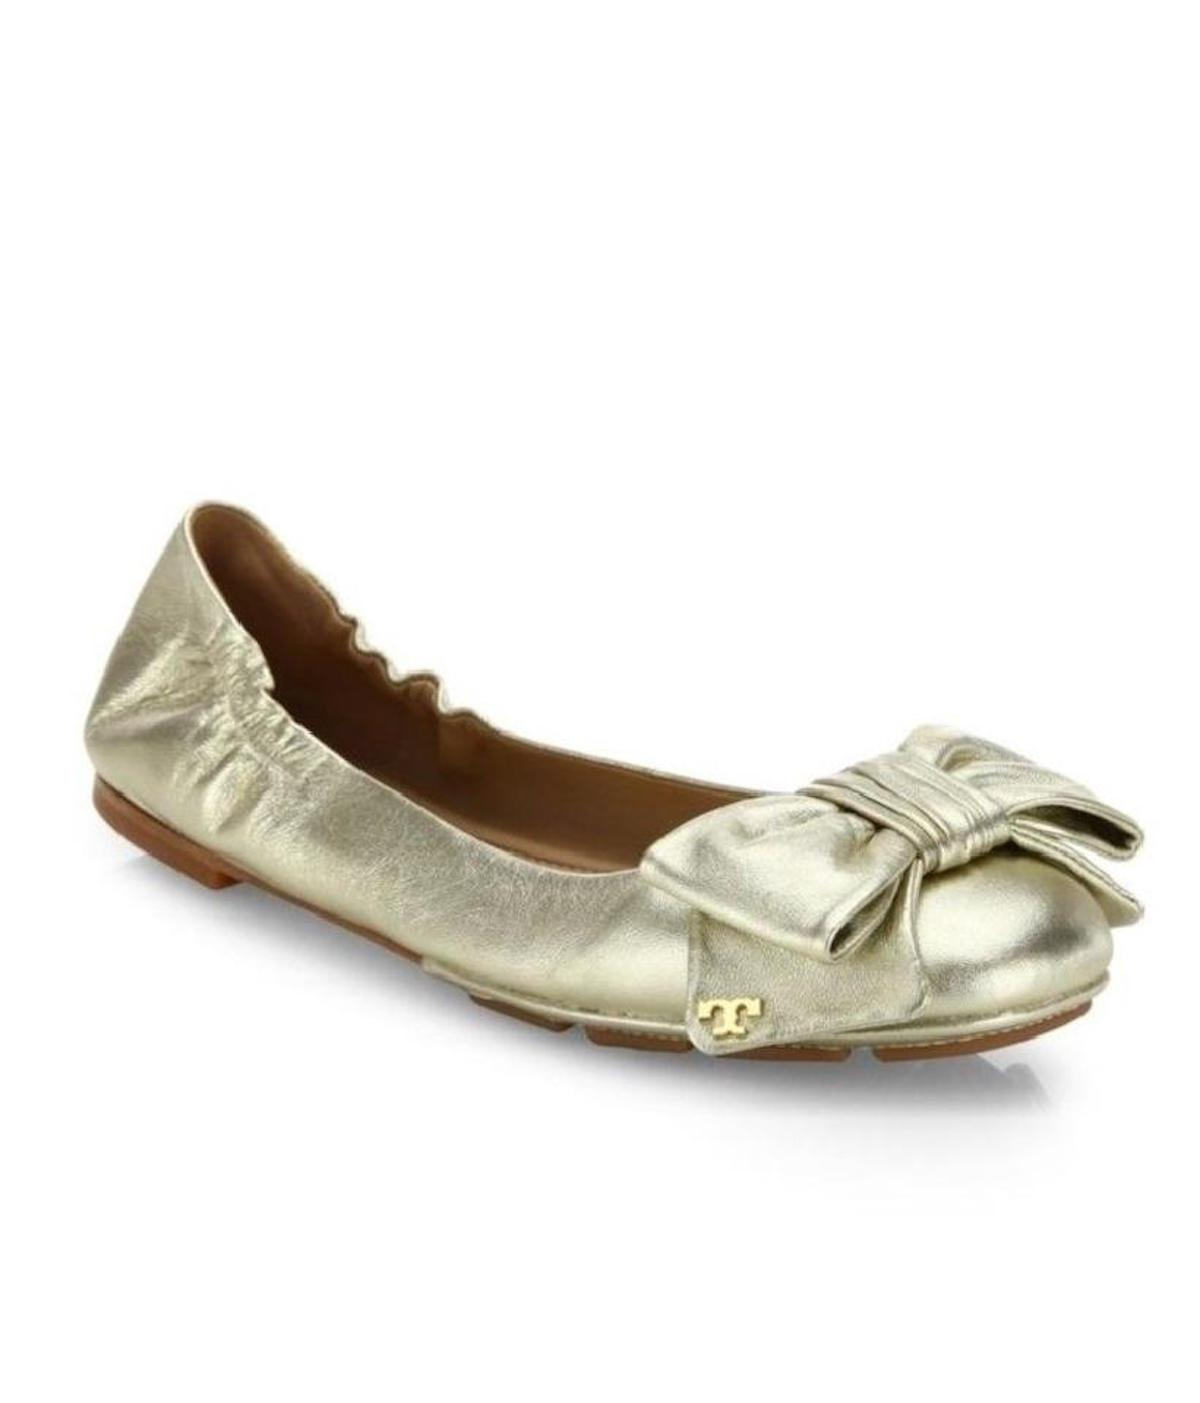 ae51be6d7c1 authentic tory burch gold ballet flats 0b807 445a9